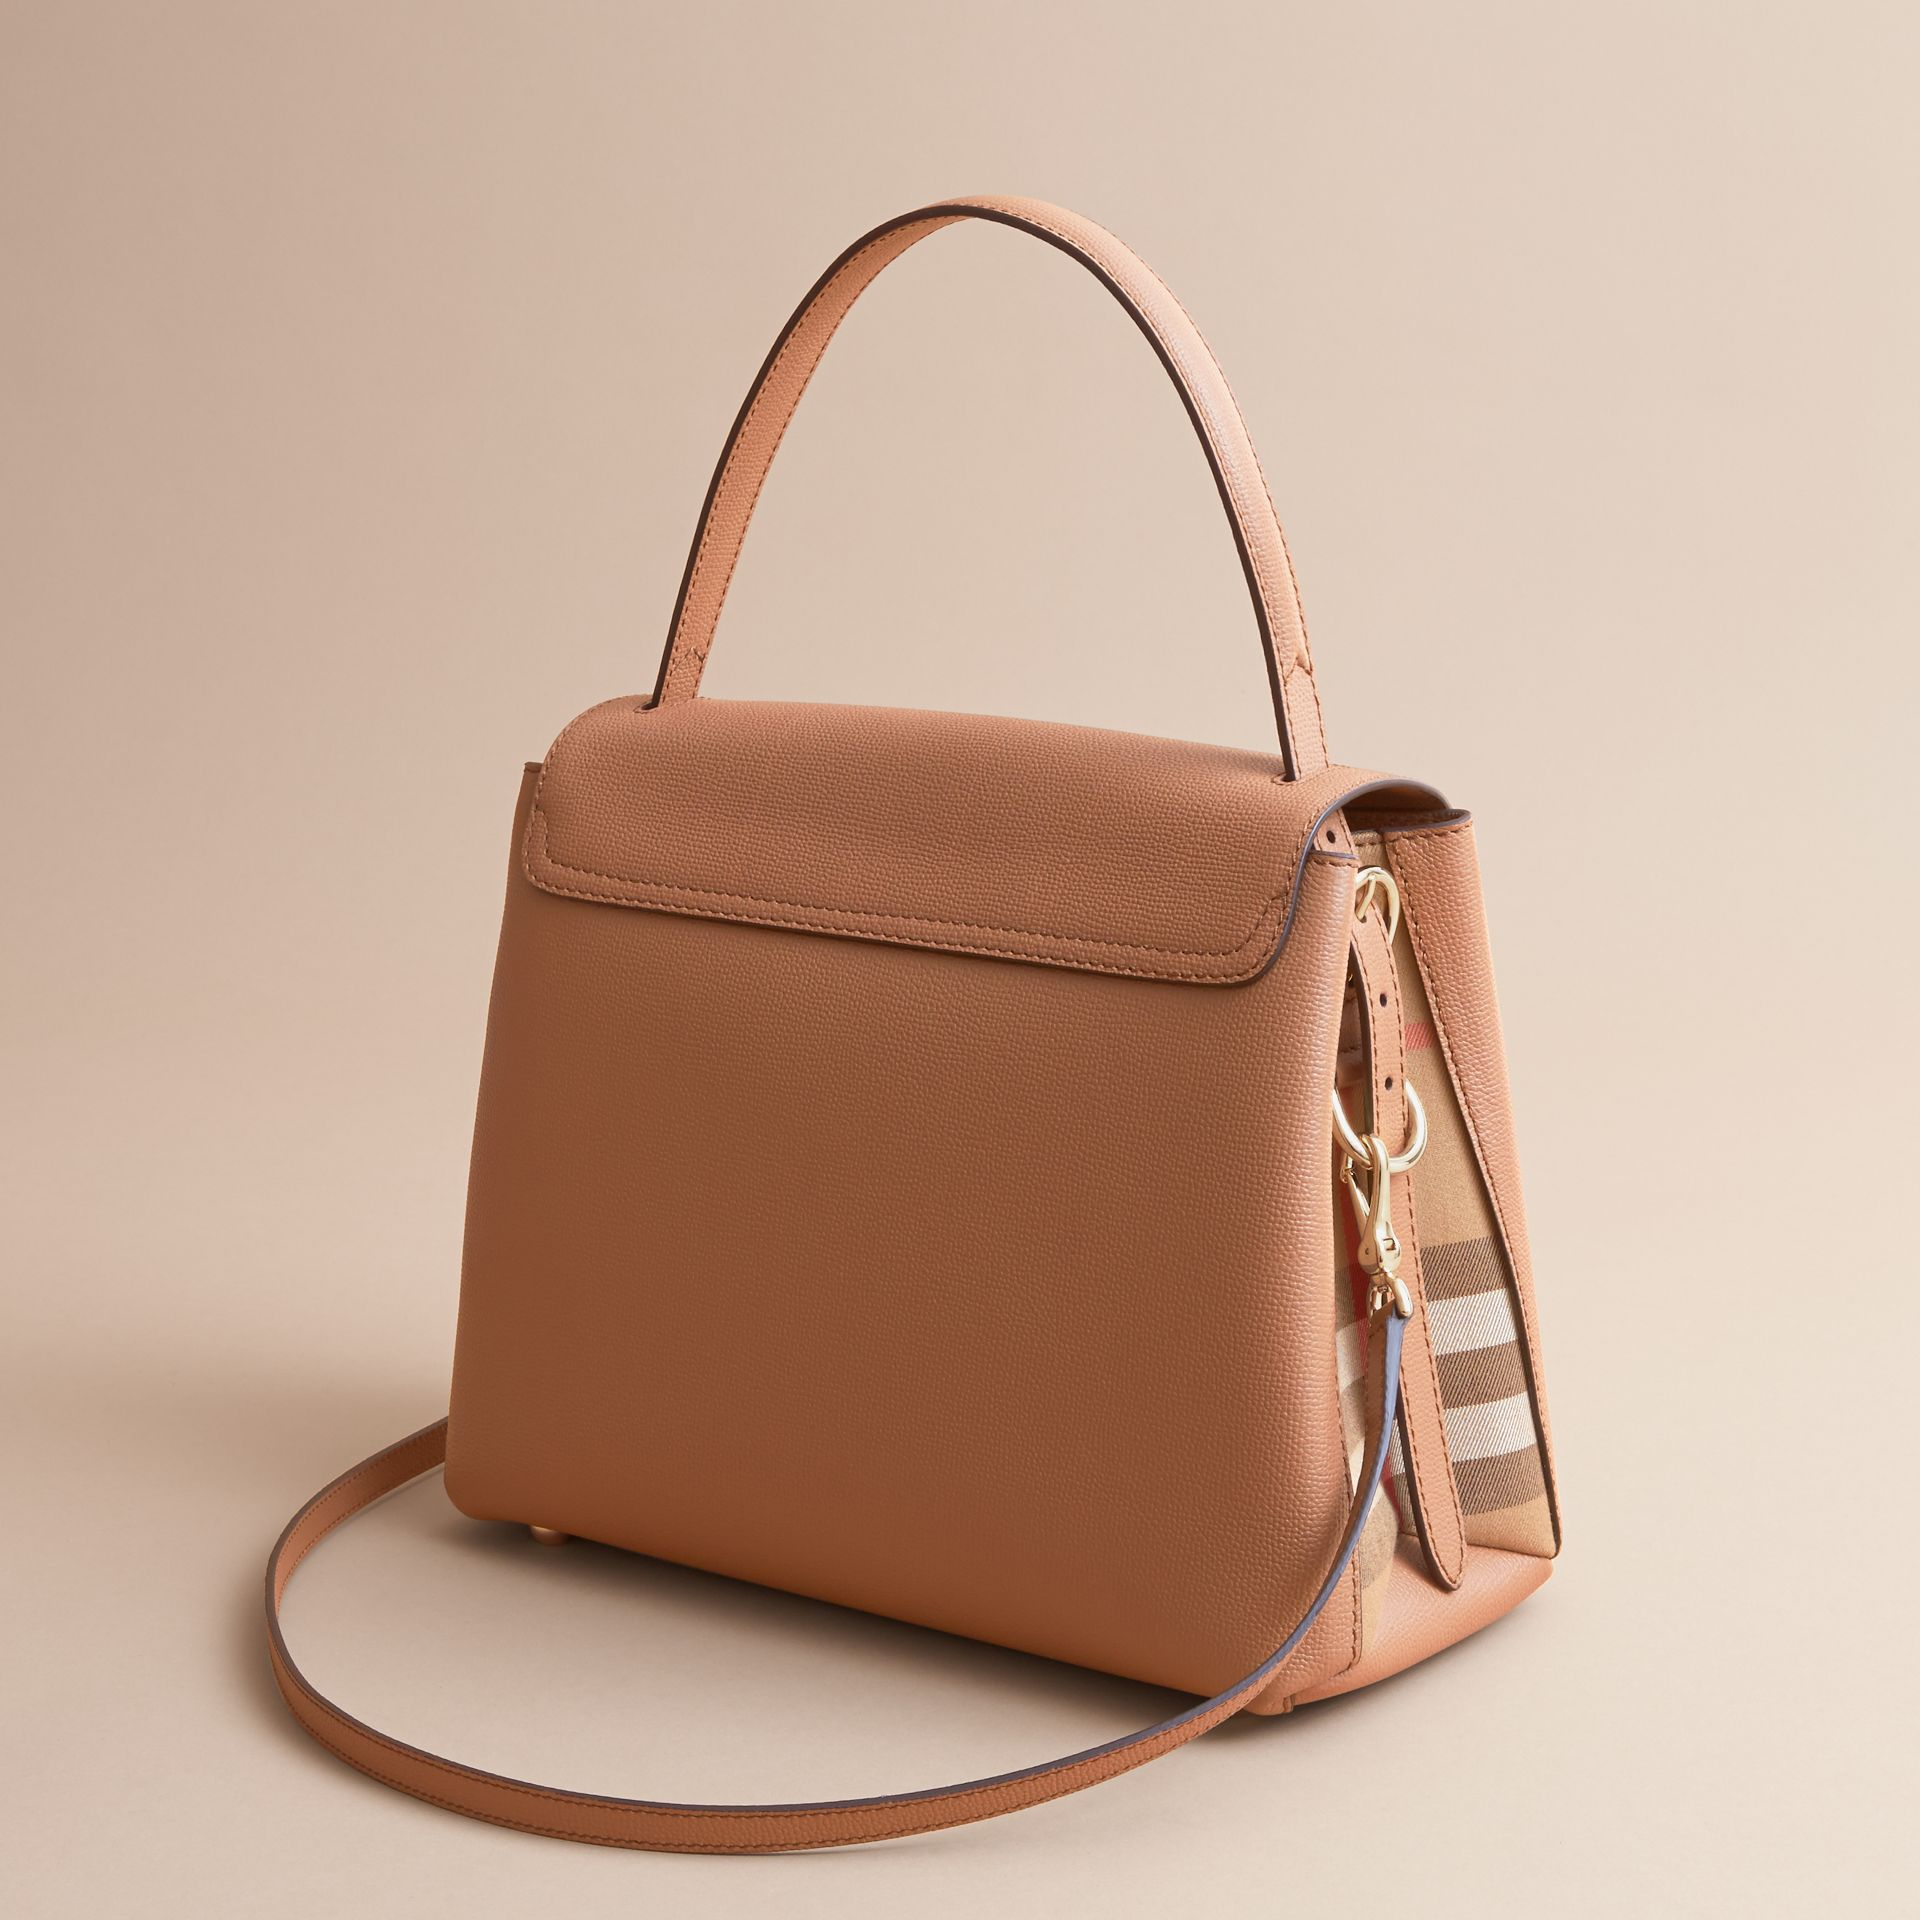 Medium Grainy Leather and House Check Tote Bag in Dark Sand - Women | Burberry Australia - gallery image 3